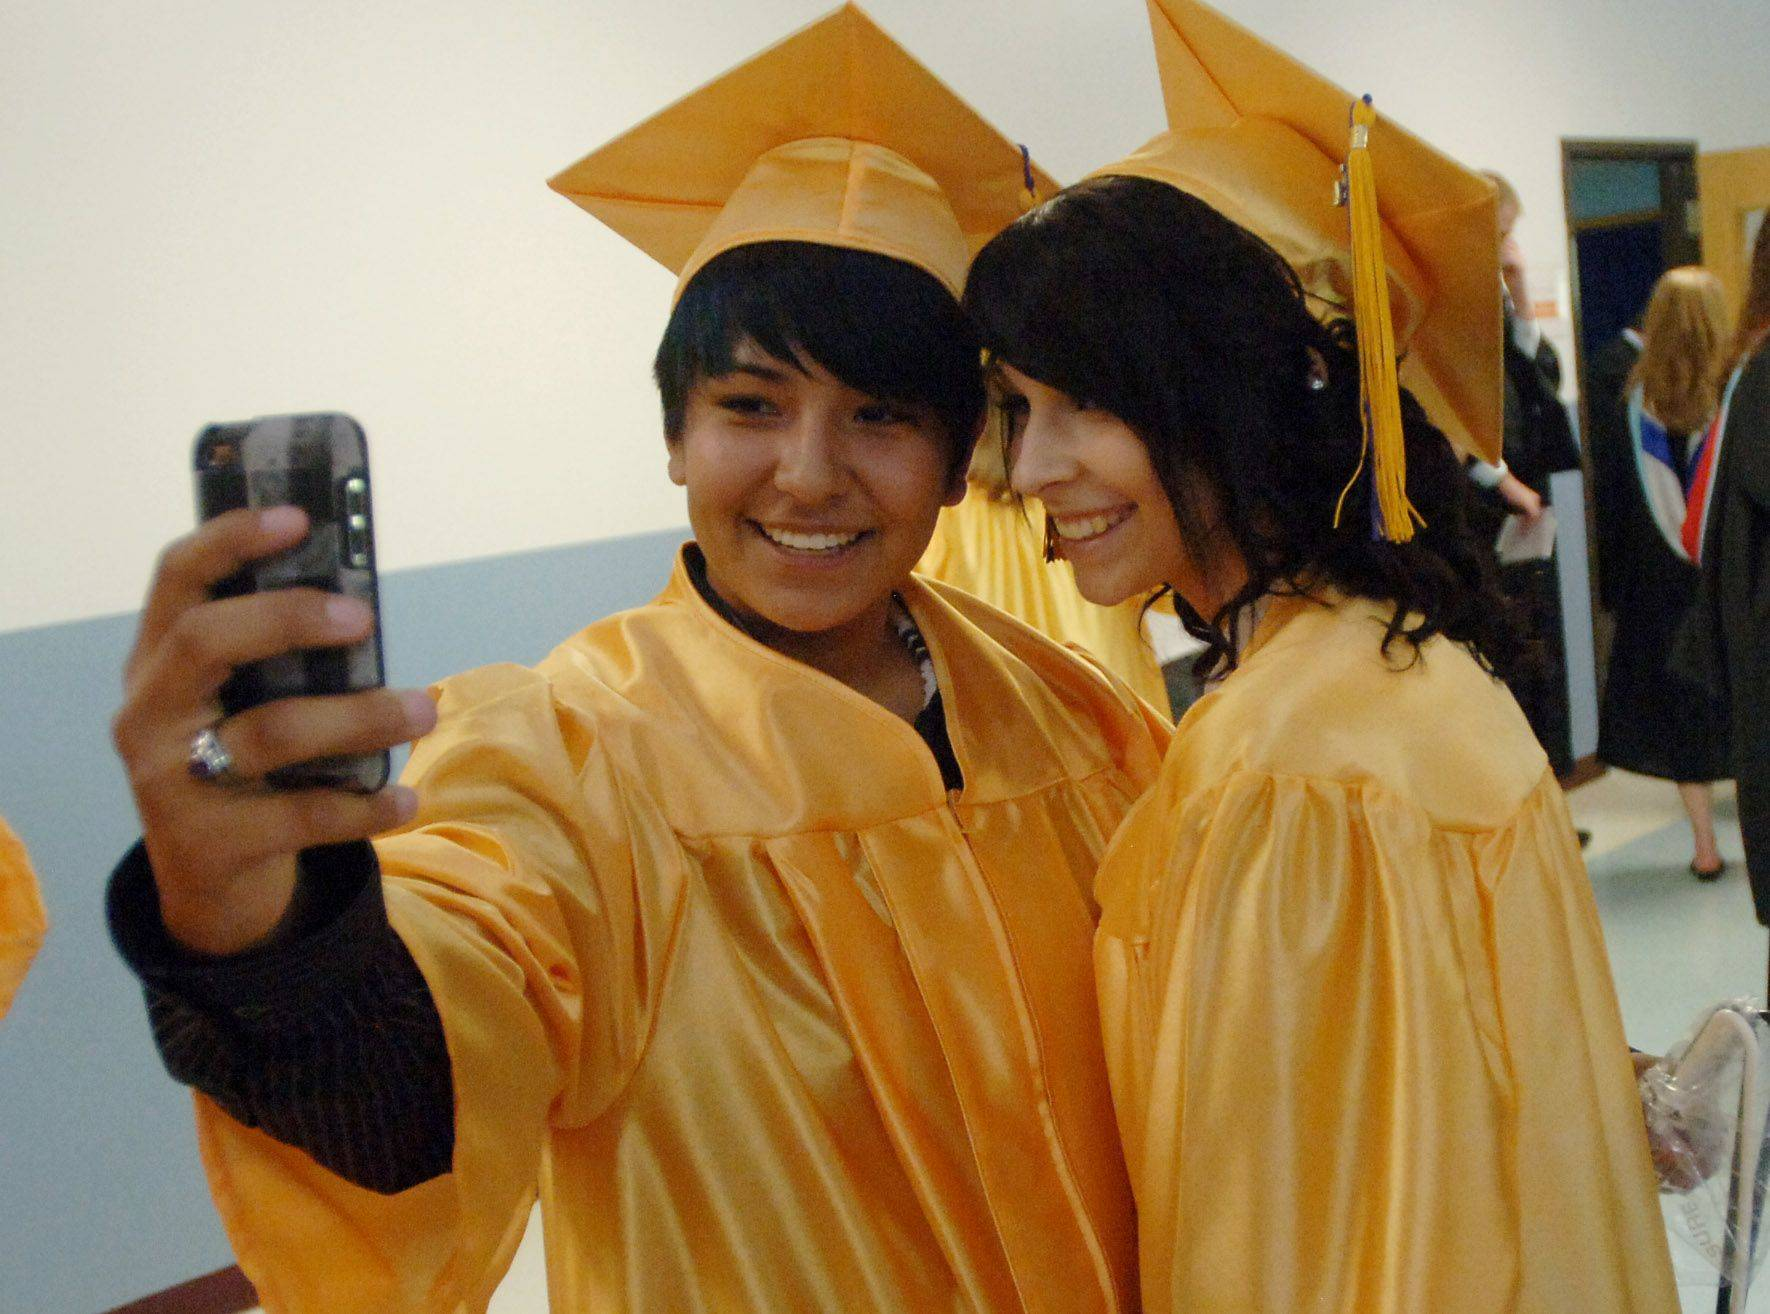 Images: Wauconda High School graduation